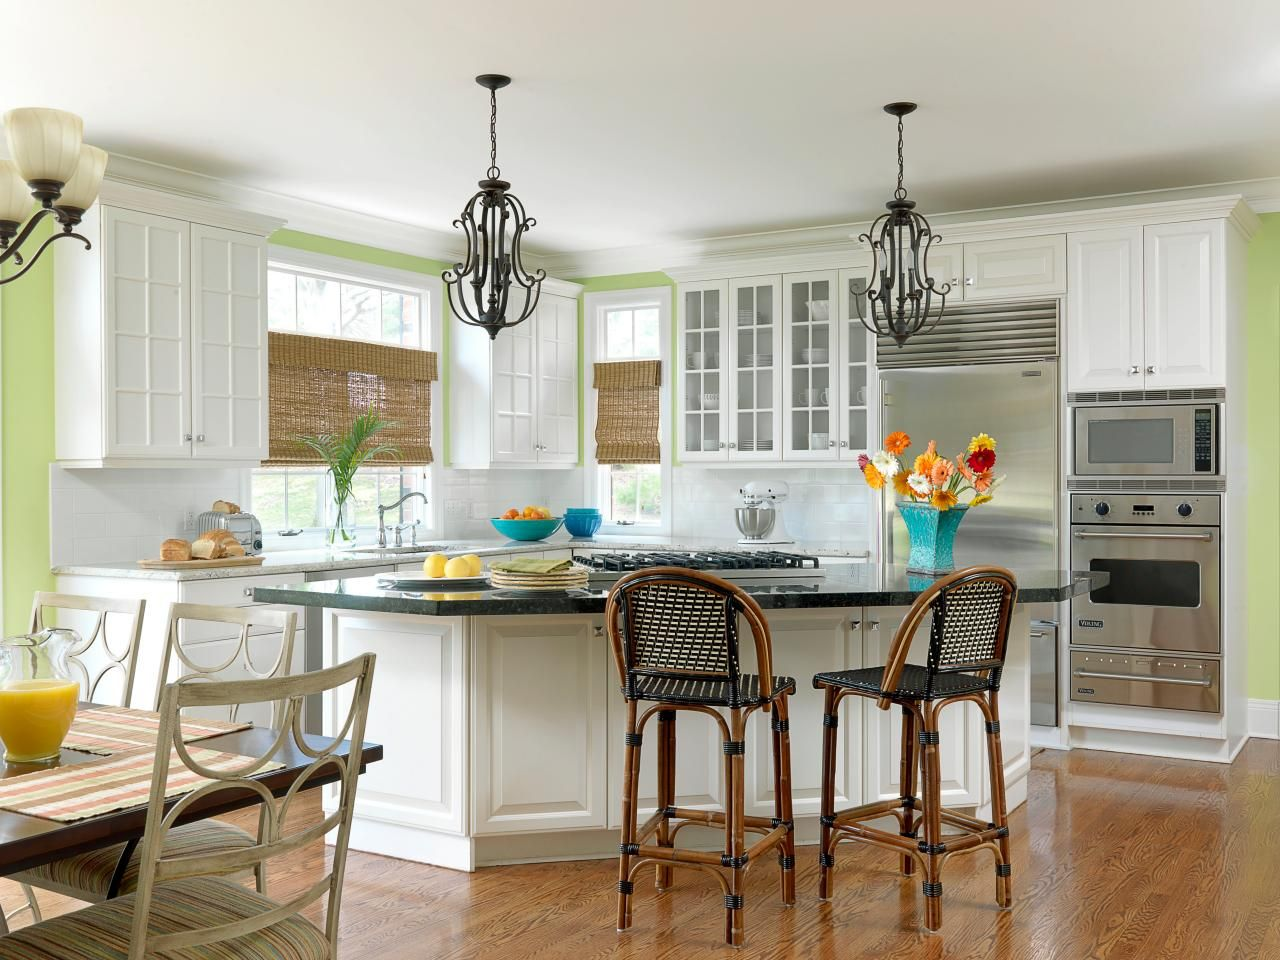 White cabinets crisply contrast with bright green walls in this ...